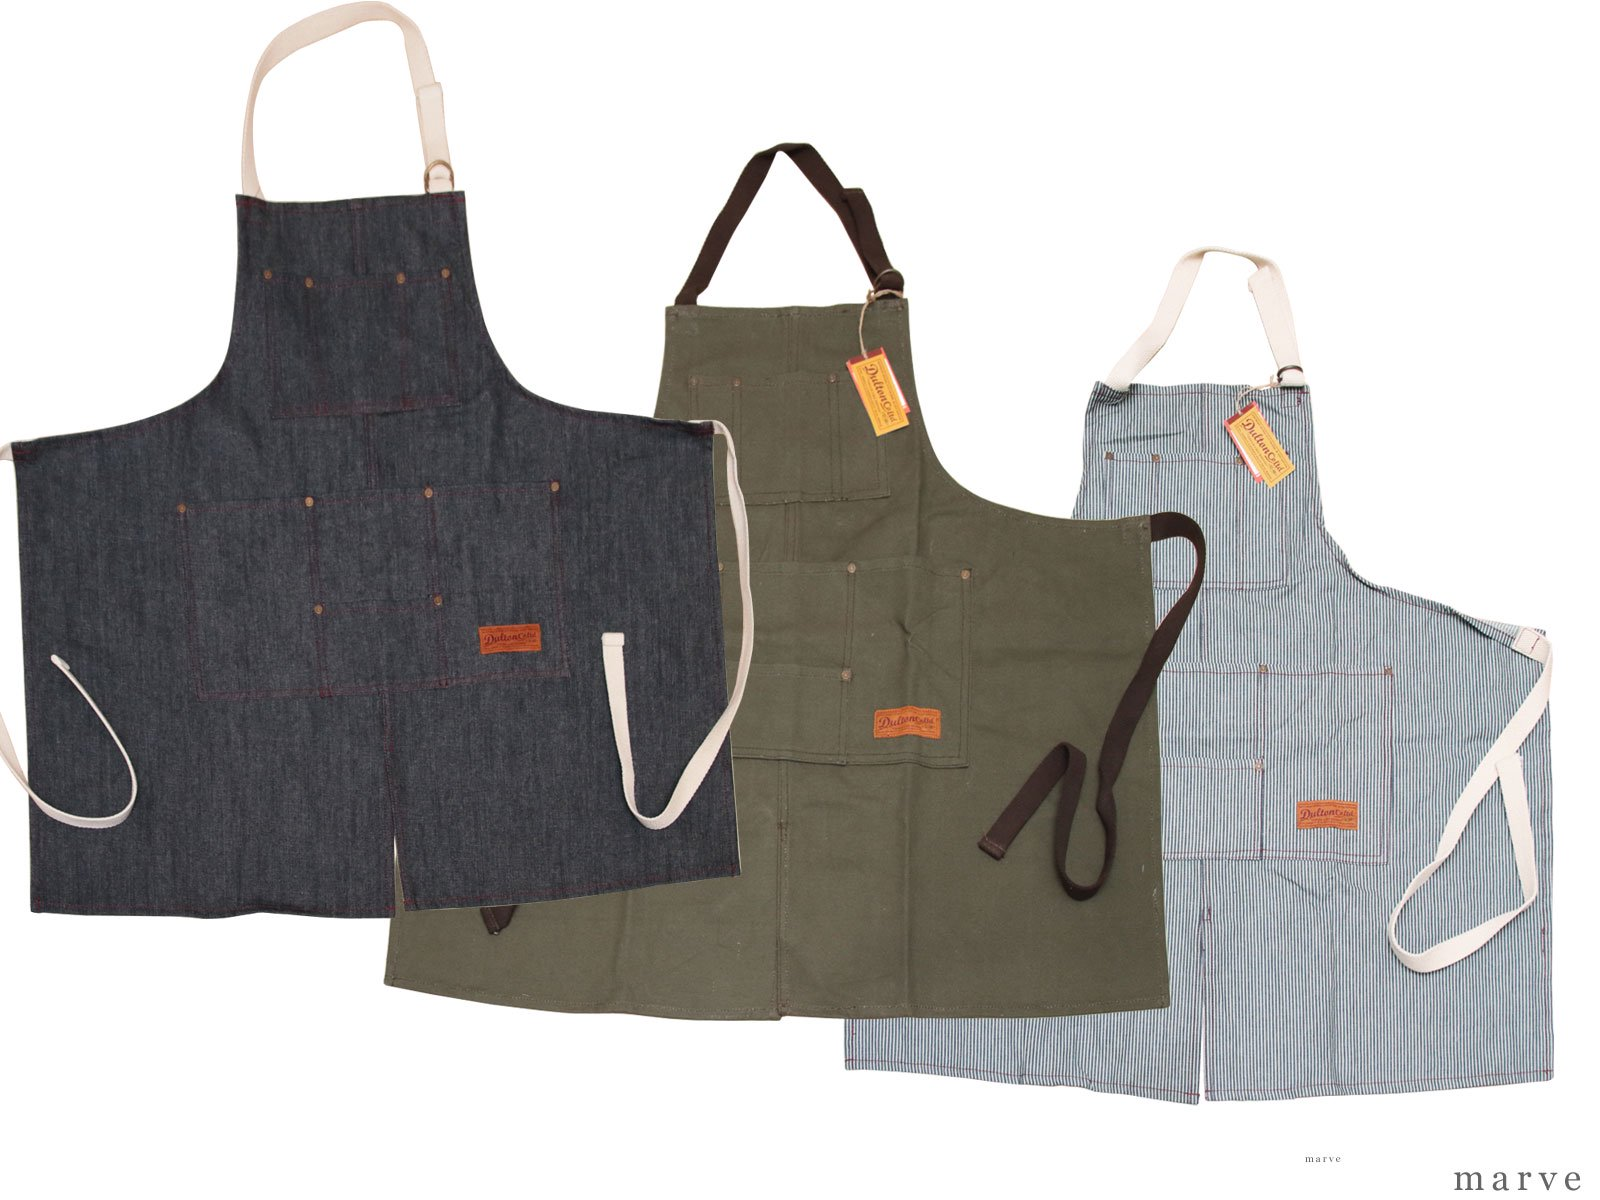 MW ワーク エプロン(WORK APRON )<img class='new_mark_img2' src='https://img.shop-pro.jp/img/new/icons25.gif' style='border:none;display:inline;margin:0px;padding:0px;width:auto;' /> グッズ